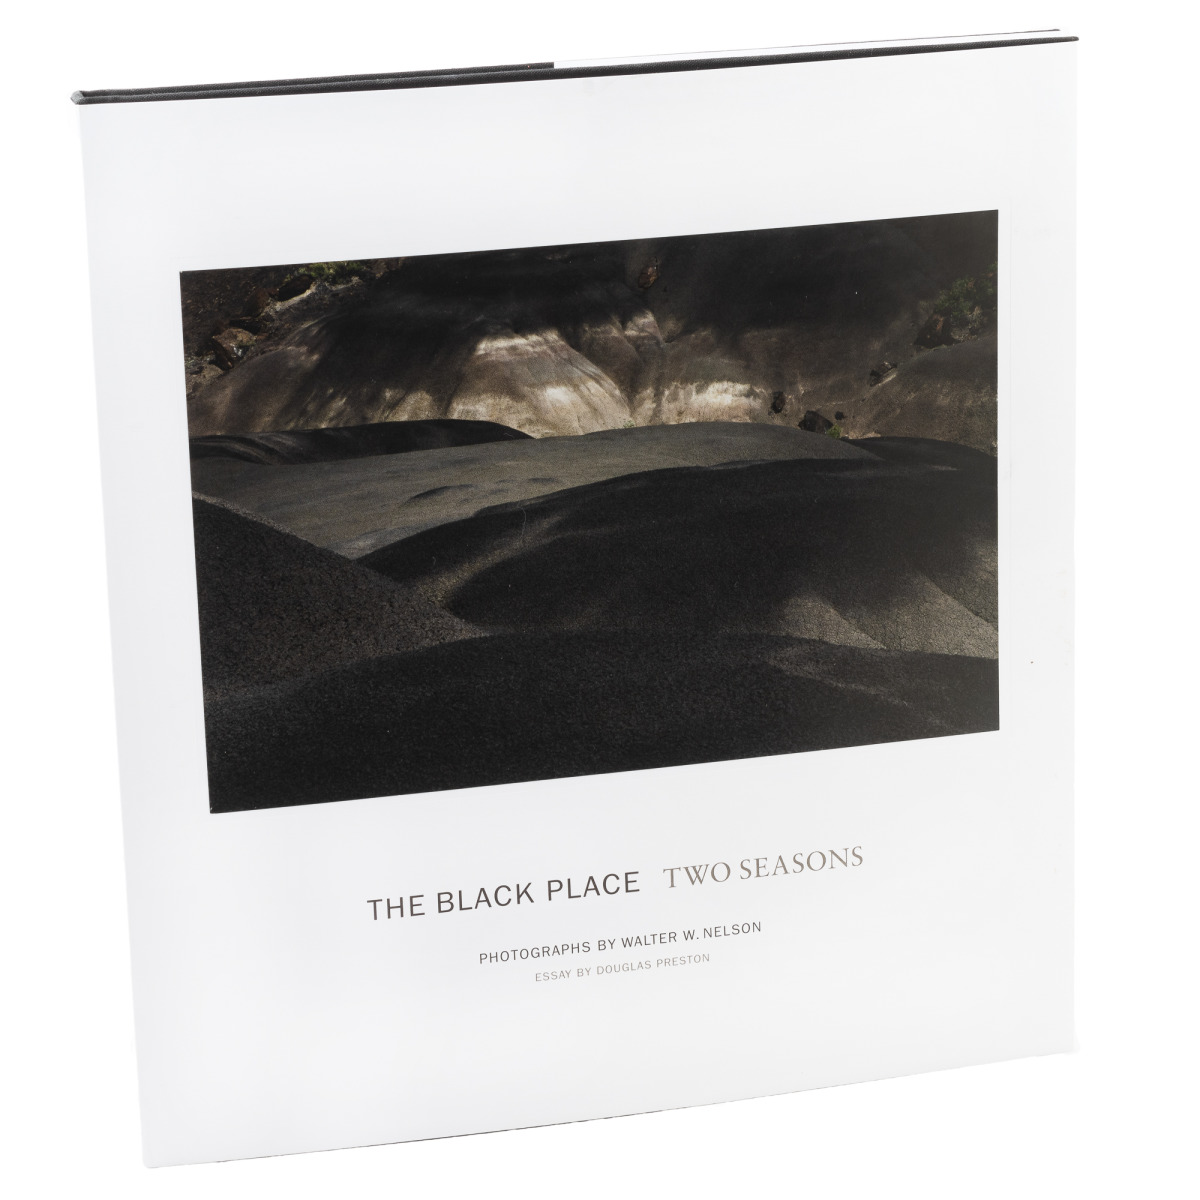 The Black Place, Two Seasons by Walter W. Nelson